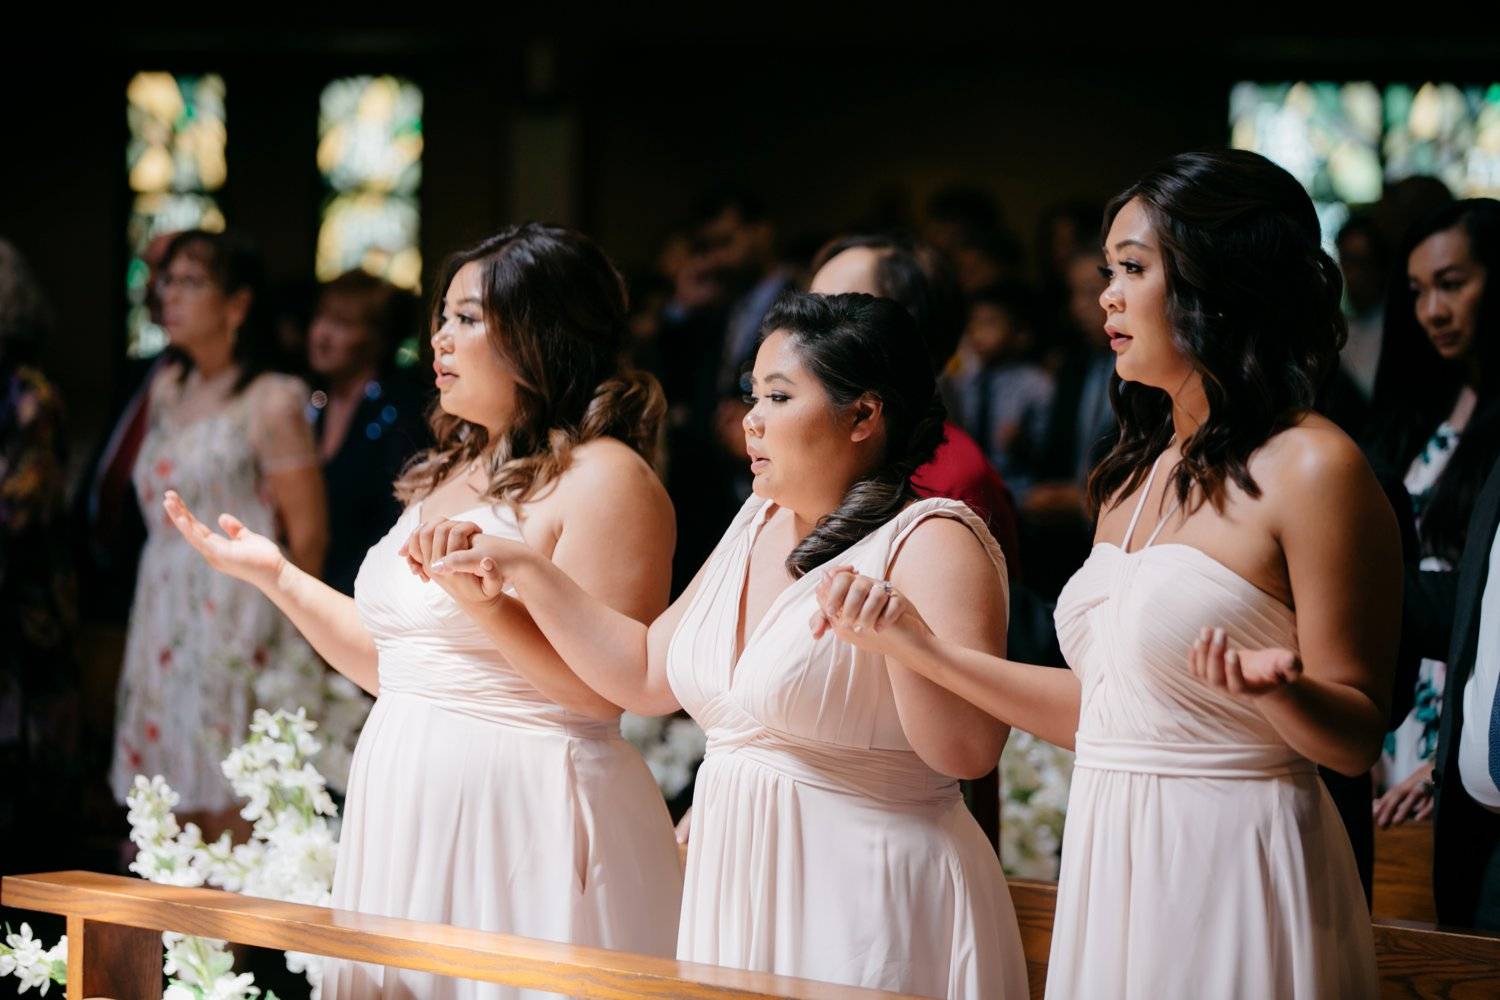 Irvine Wedding Kevin Le Vu Photography- 66.jpg